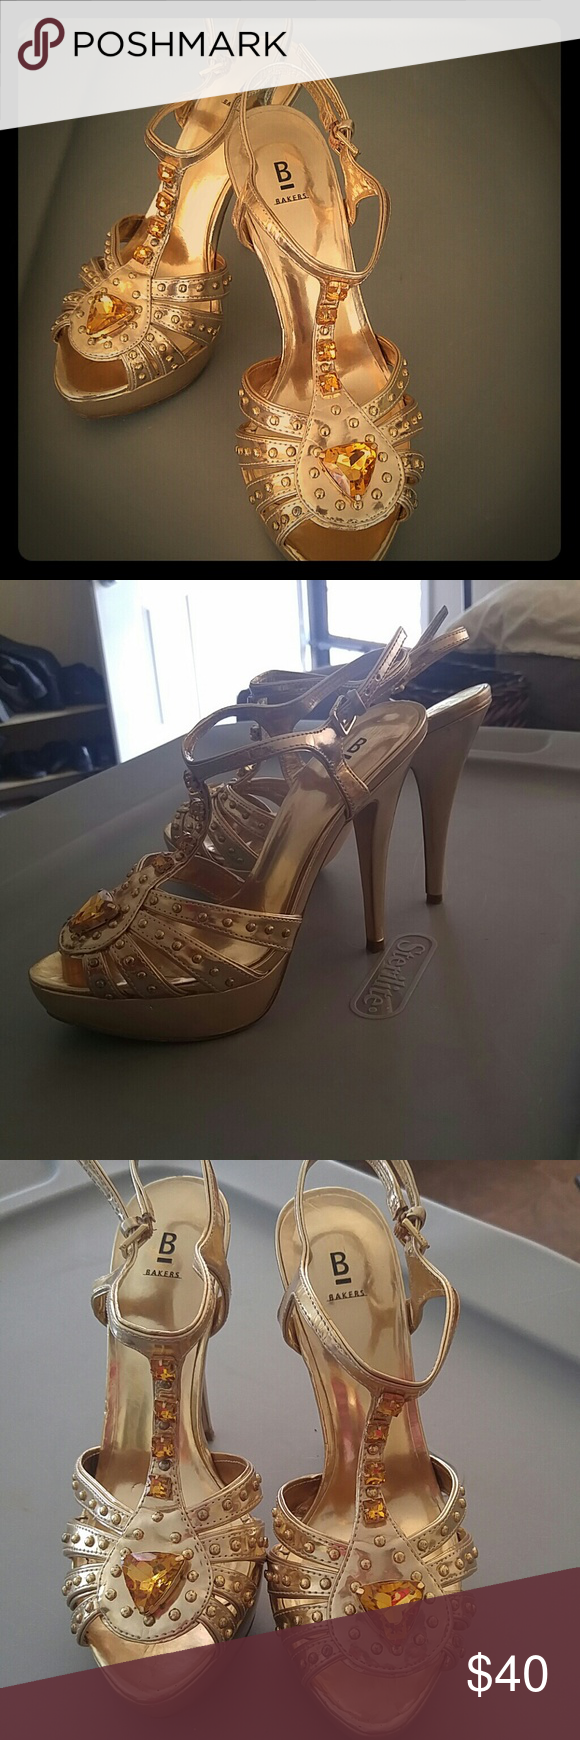 Gorgeous gold strappy platform pumps! Summery gold siletto pumps with gold bead embellishment, along with Amber/Corrine crystal accents. Thin buckle straps. Minimal scuff marks around bottom of shoe. Inside sole is spotless. Normal wear on bottom threads. Worn once for my high school prom! Great deal. Very good/like-new condition!! Bakers Shoes Heels